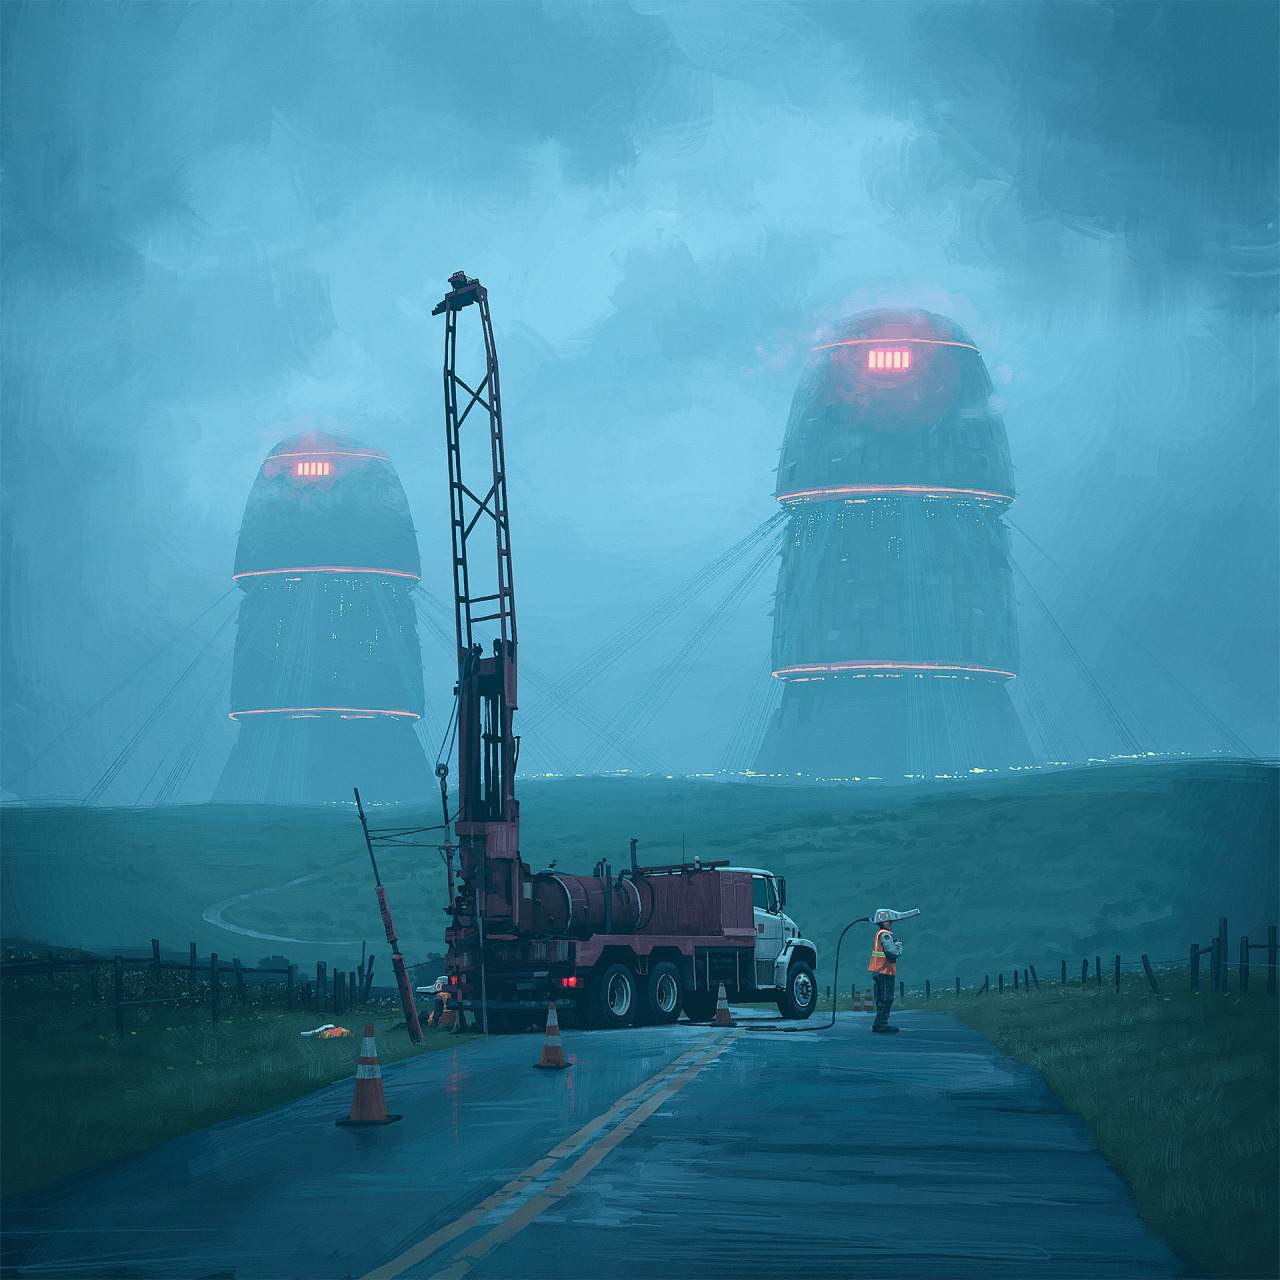 by Simon Stalenhag